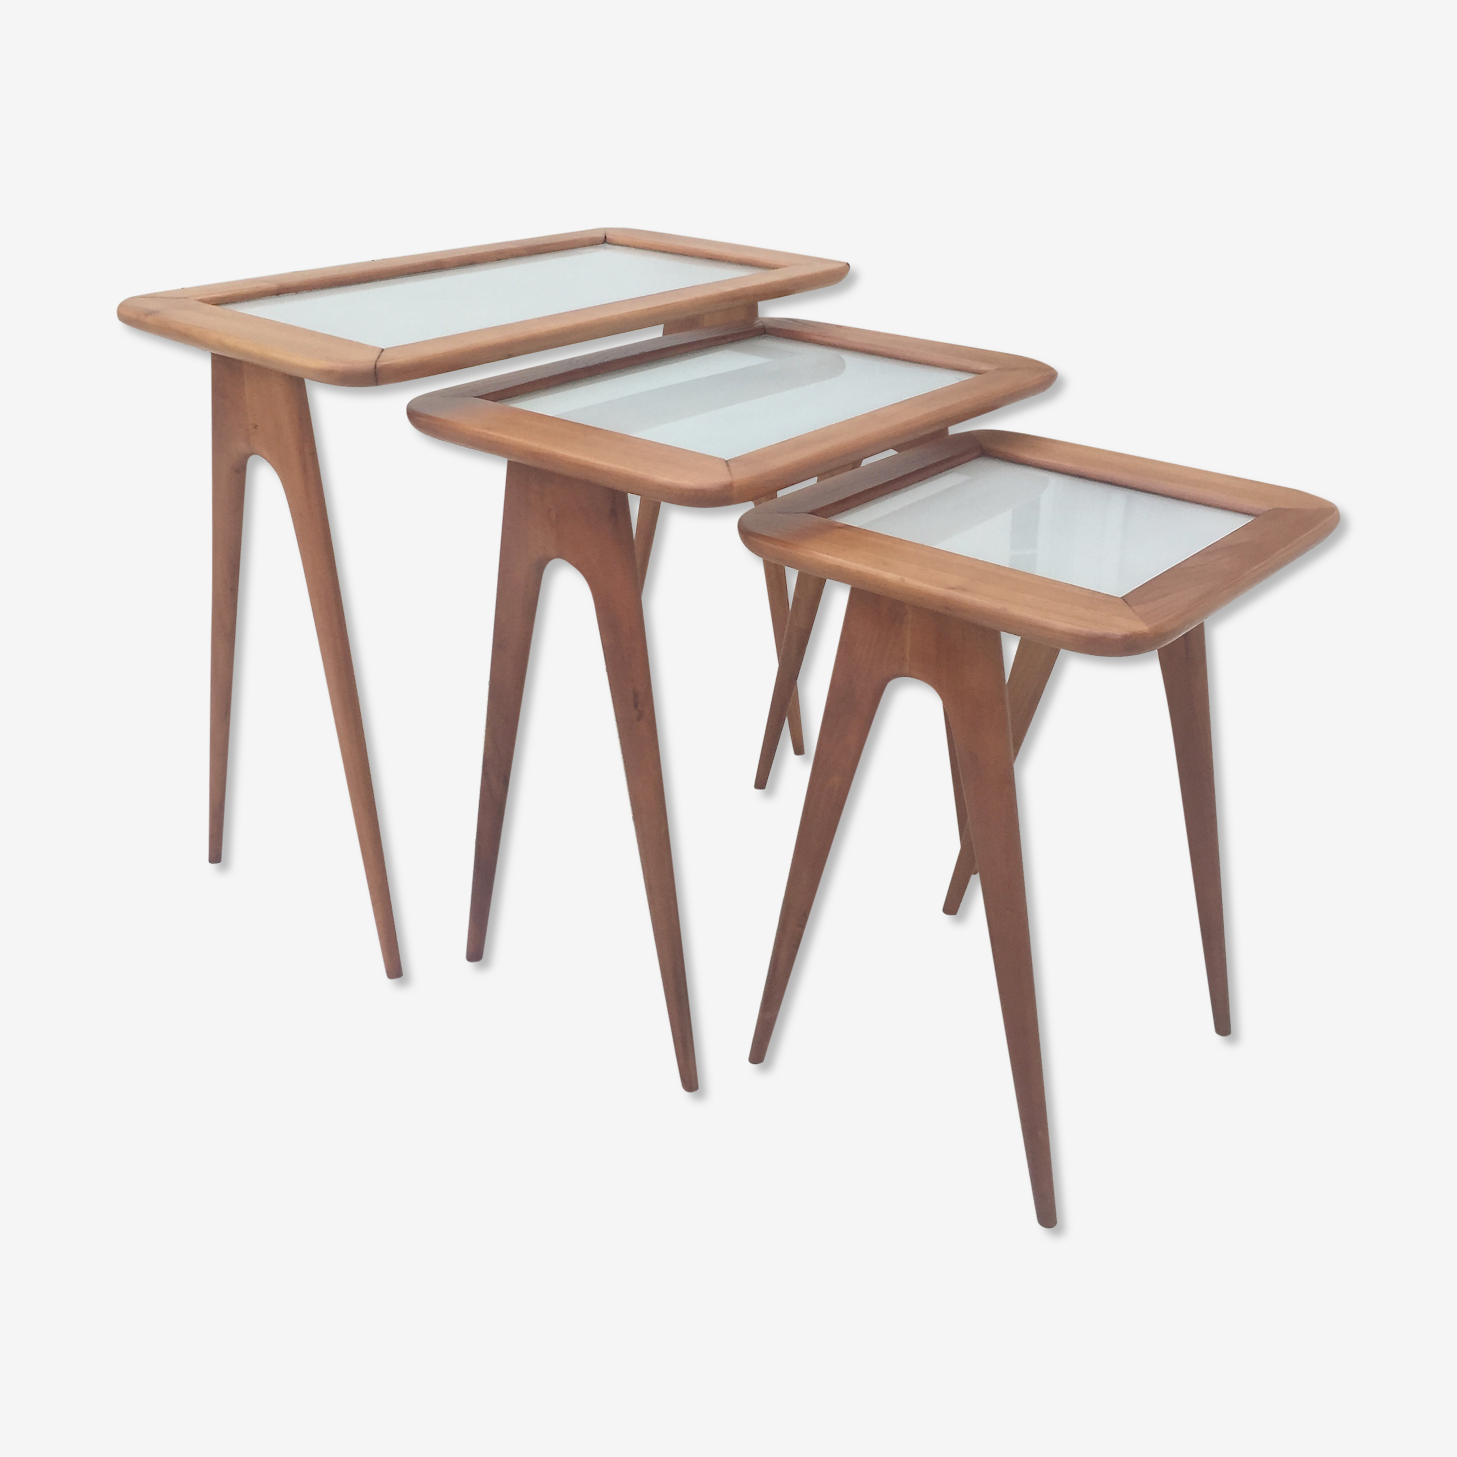 Tables pull-out Scandinavian years 60